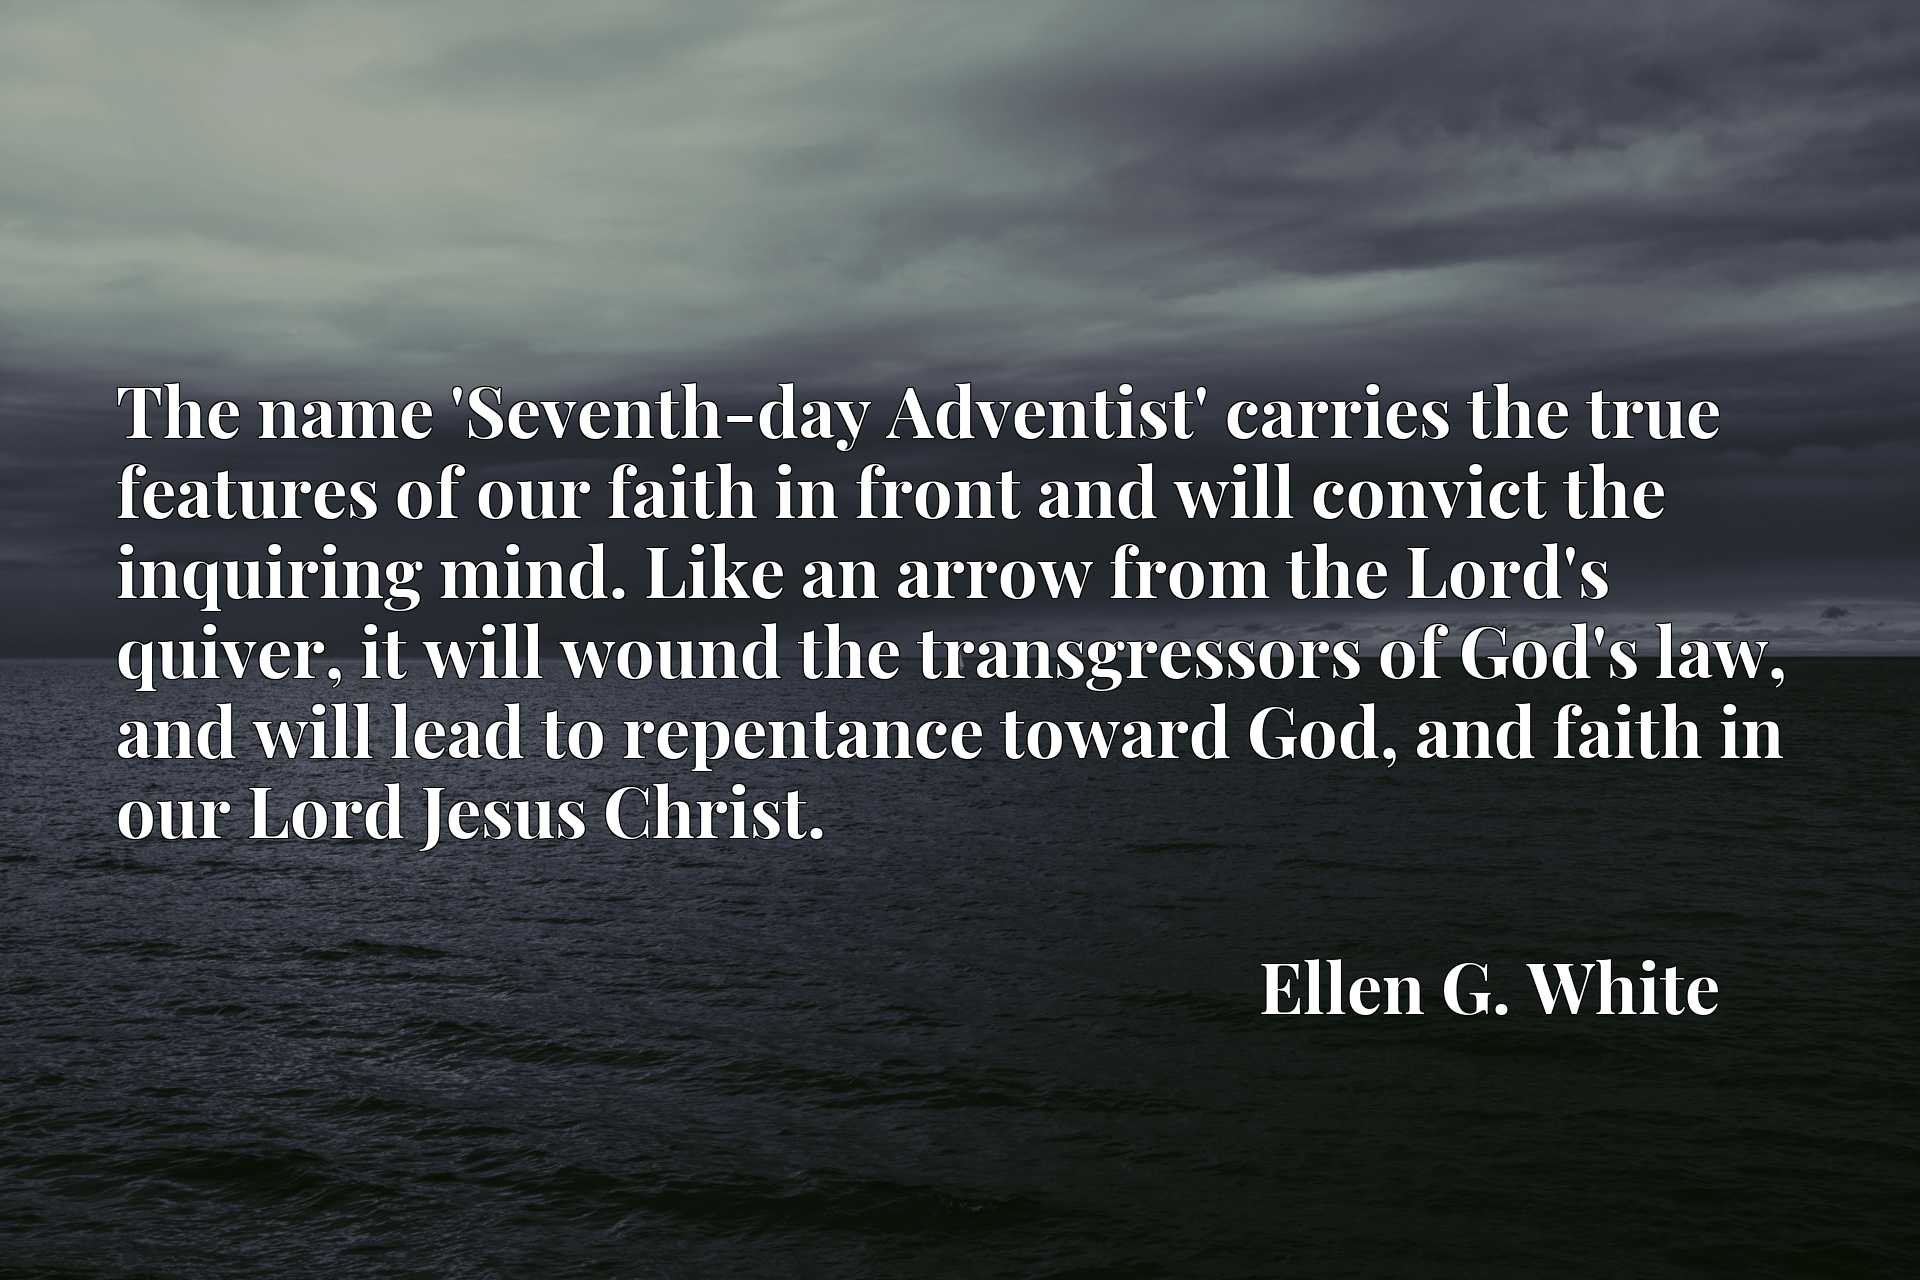 The name 'Seventh-day Adventist' carries the true features of our faith in front and will convict the inquiring mind. Like an arrow from the Lord's quiver, it will wound the transgressors of God's law, and will lead to repentance toward God, and faith in our Lord Jesus Christ.